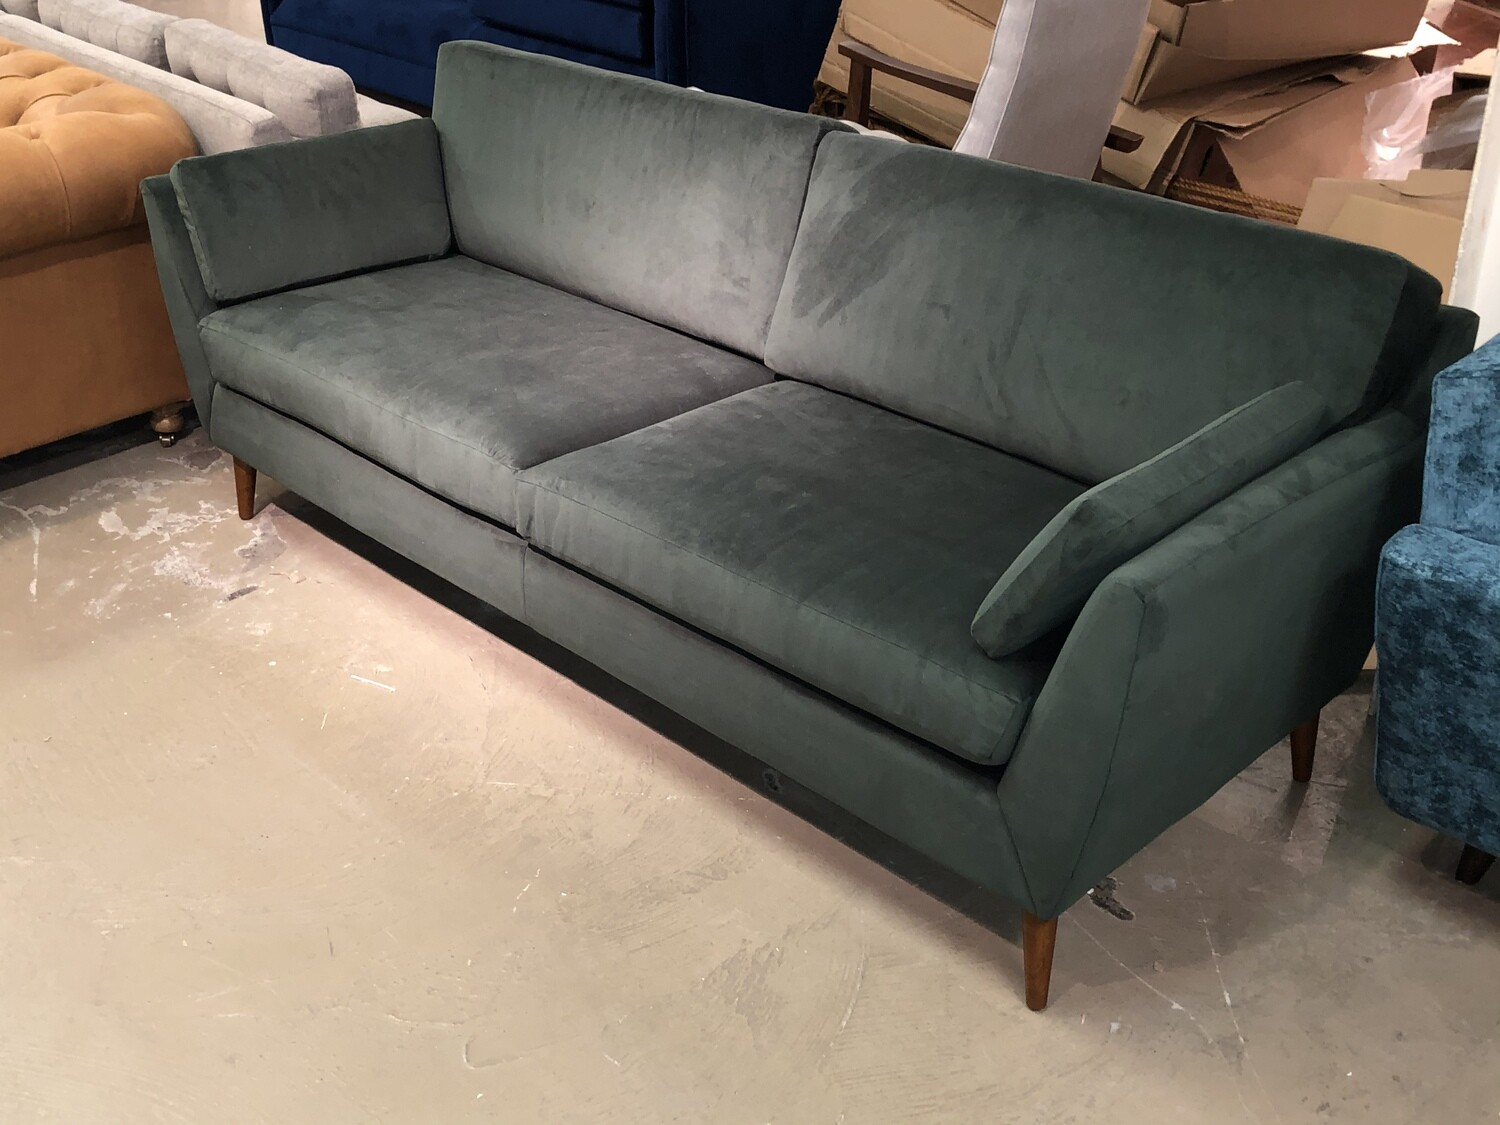 2-Cushion Seat & Back Velvet Sofa (Dark Pale Green)